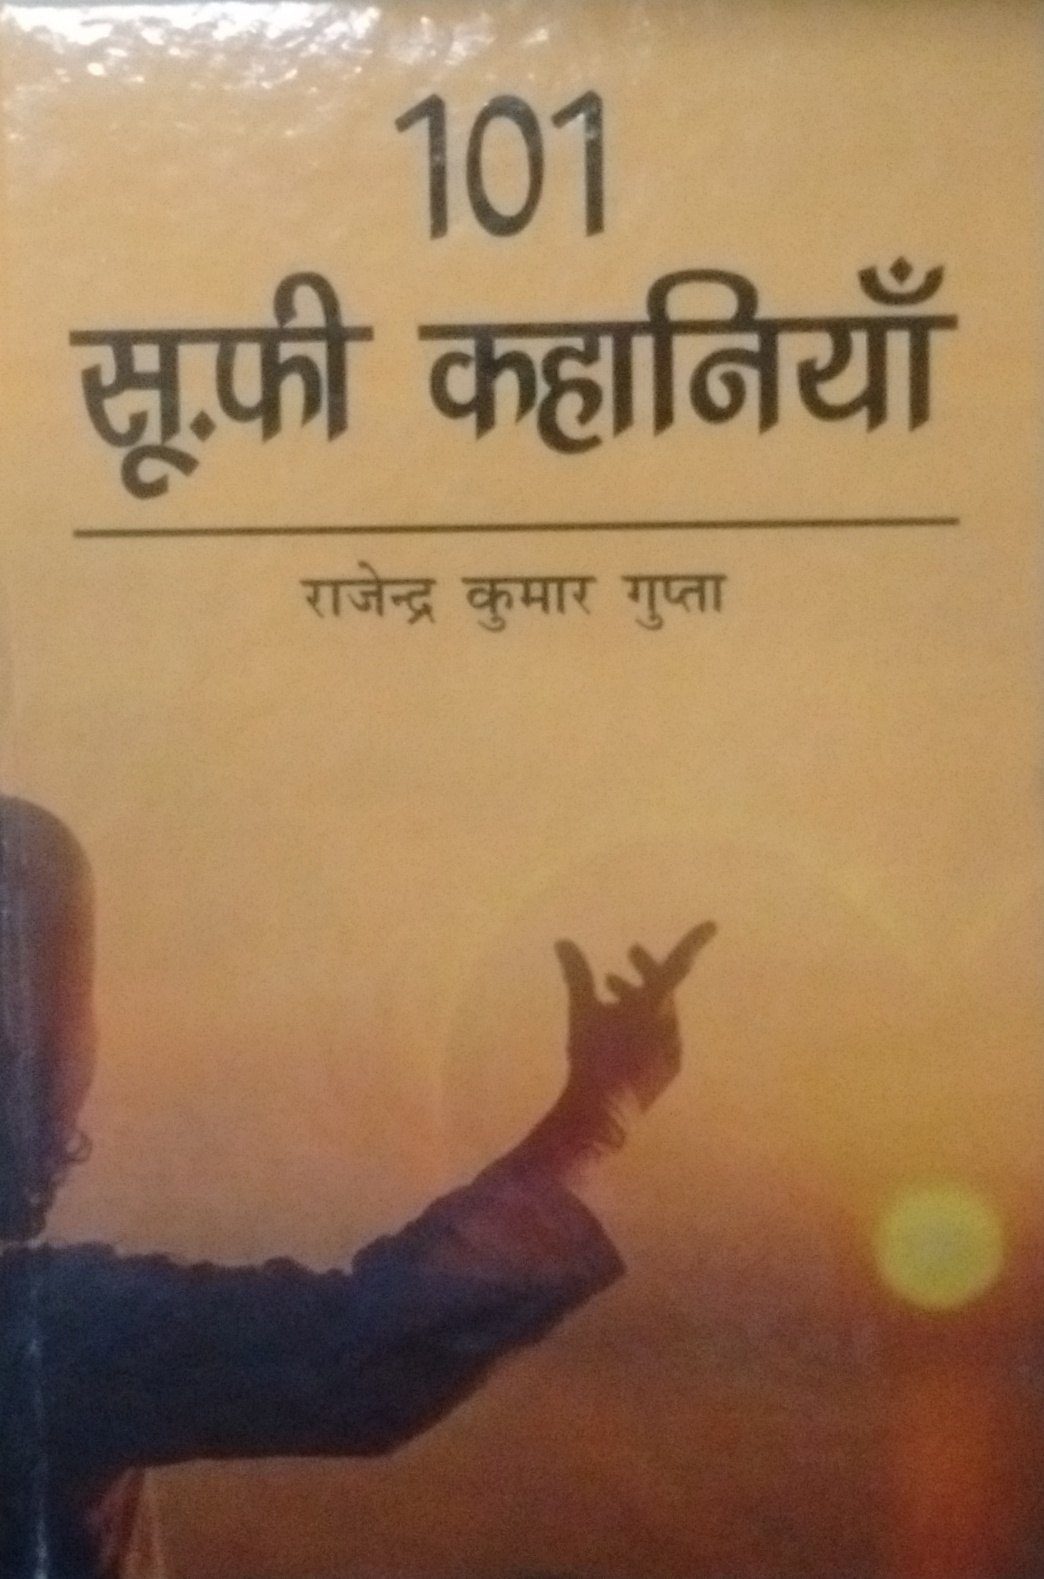 Hindi Literature - Indian books and Periodicals